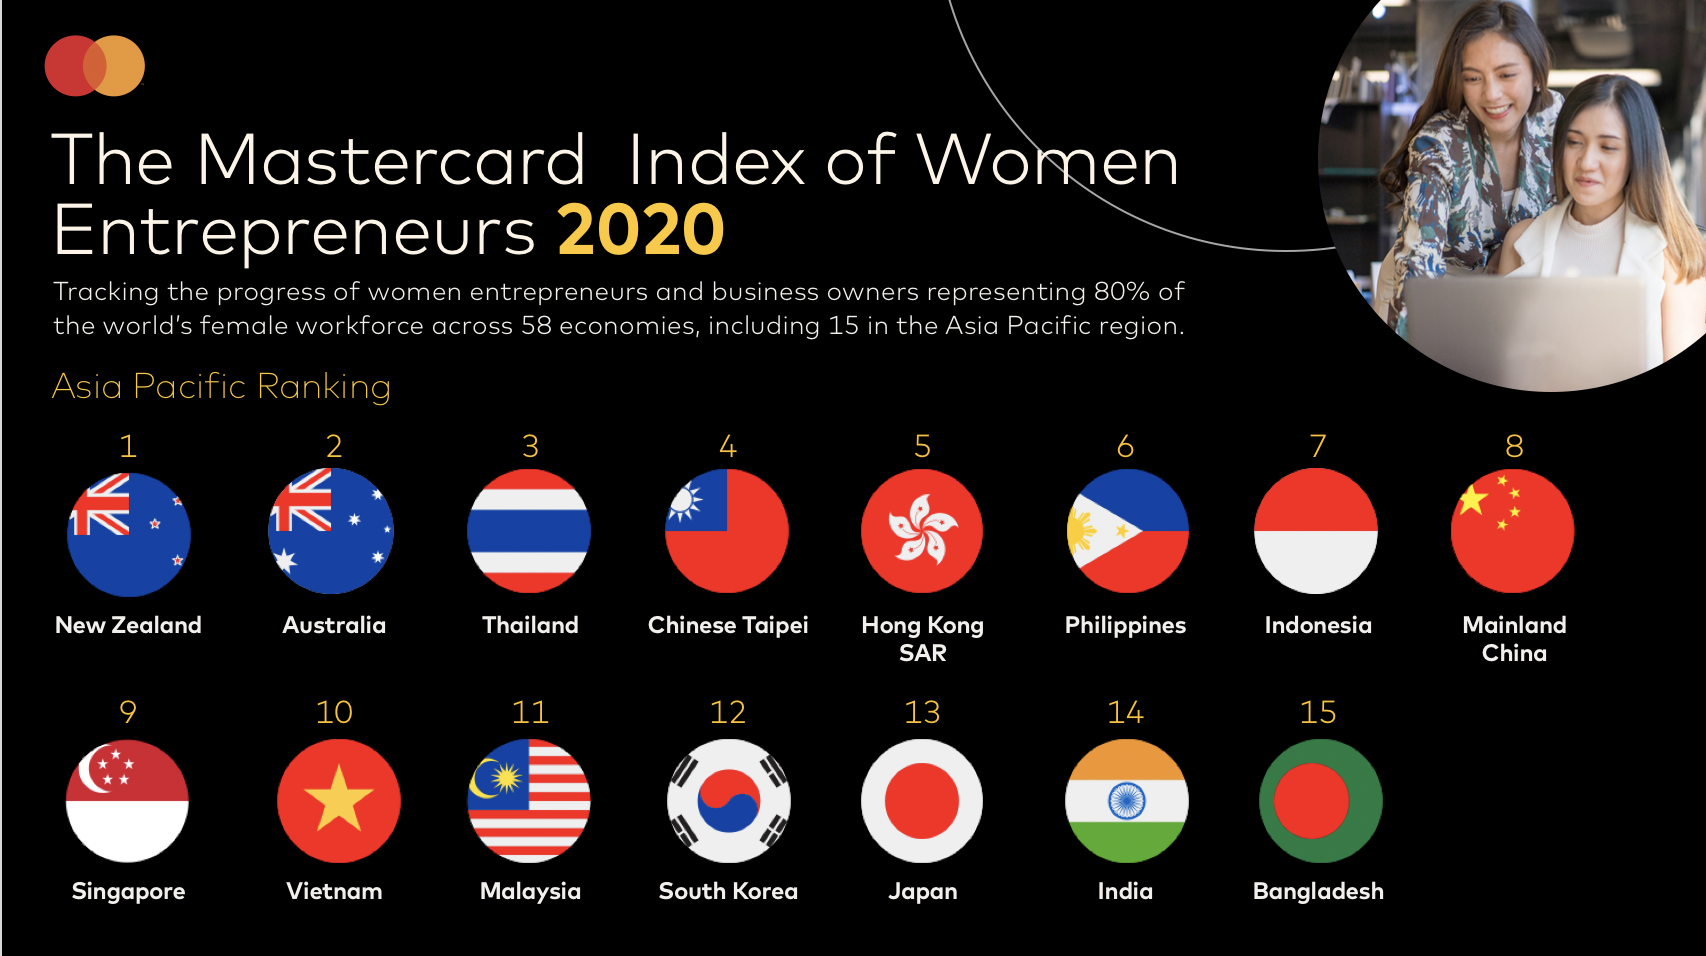 New Zealand, Australia, Thailand, Chinese Taipei, Hong Kong SAR, Philippines and Indonesia make the list of the top 20 economies globally offering the most supportive entrepreneurial conditions for women